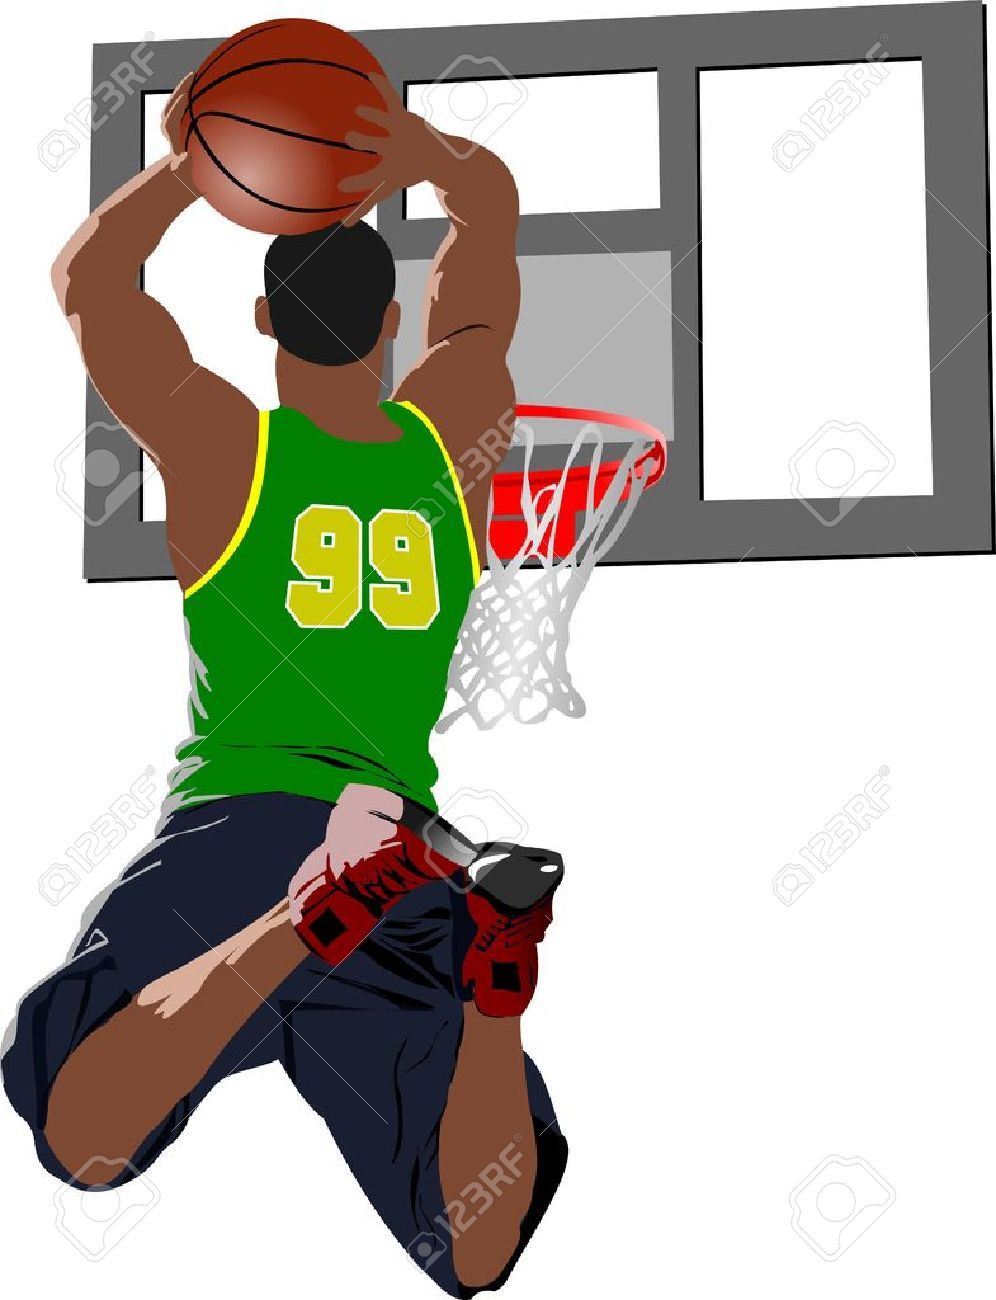 Basketball Players. Colored Illustration For Designers Royalty.